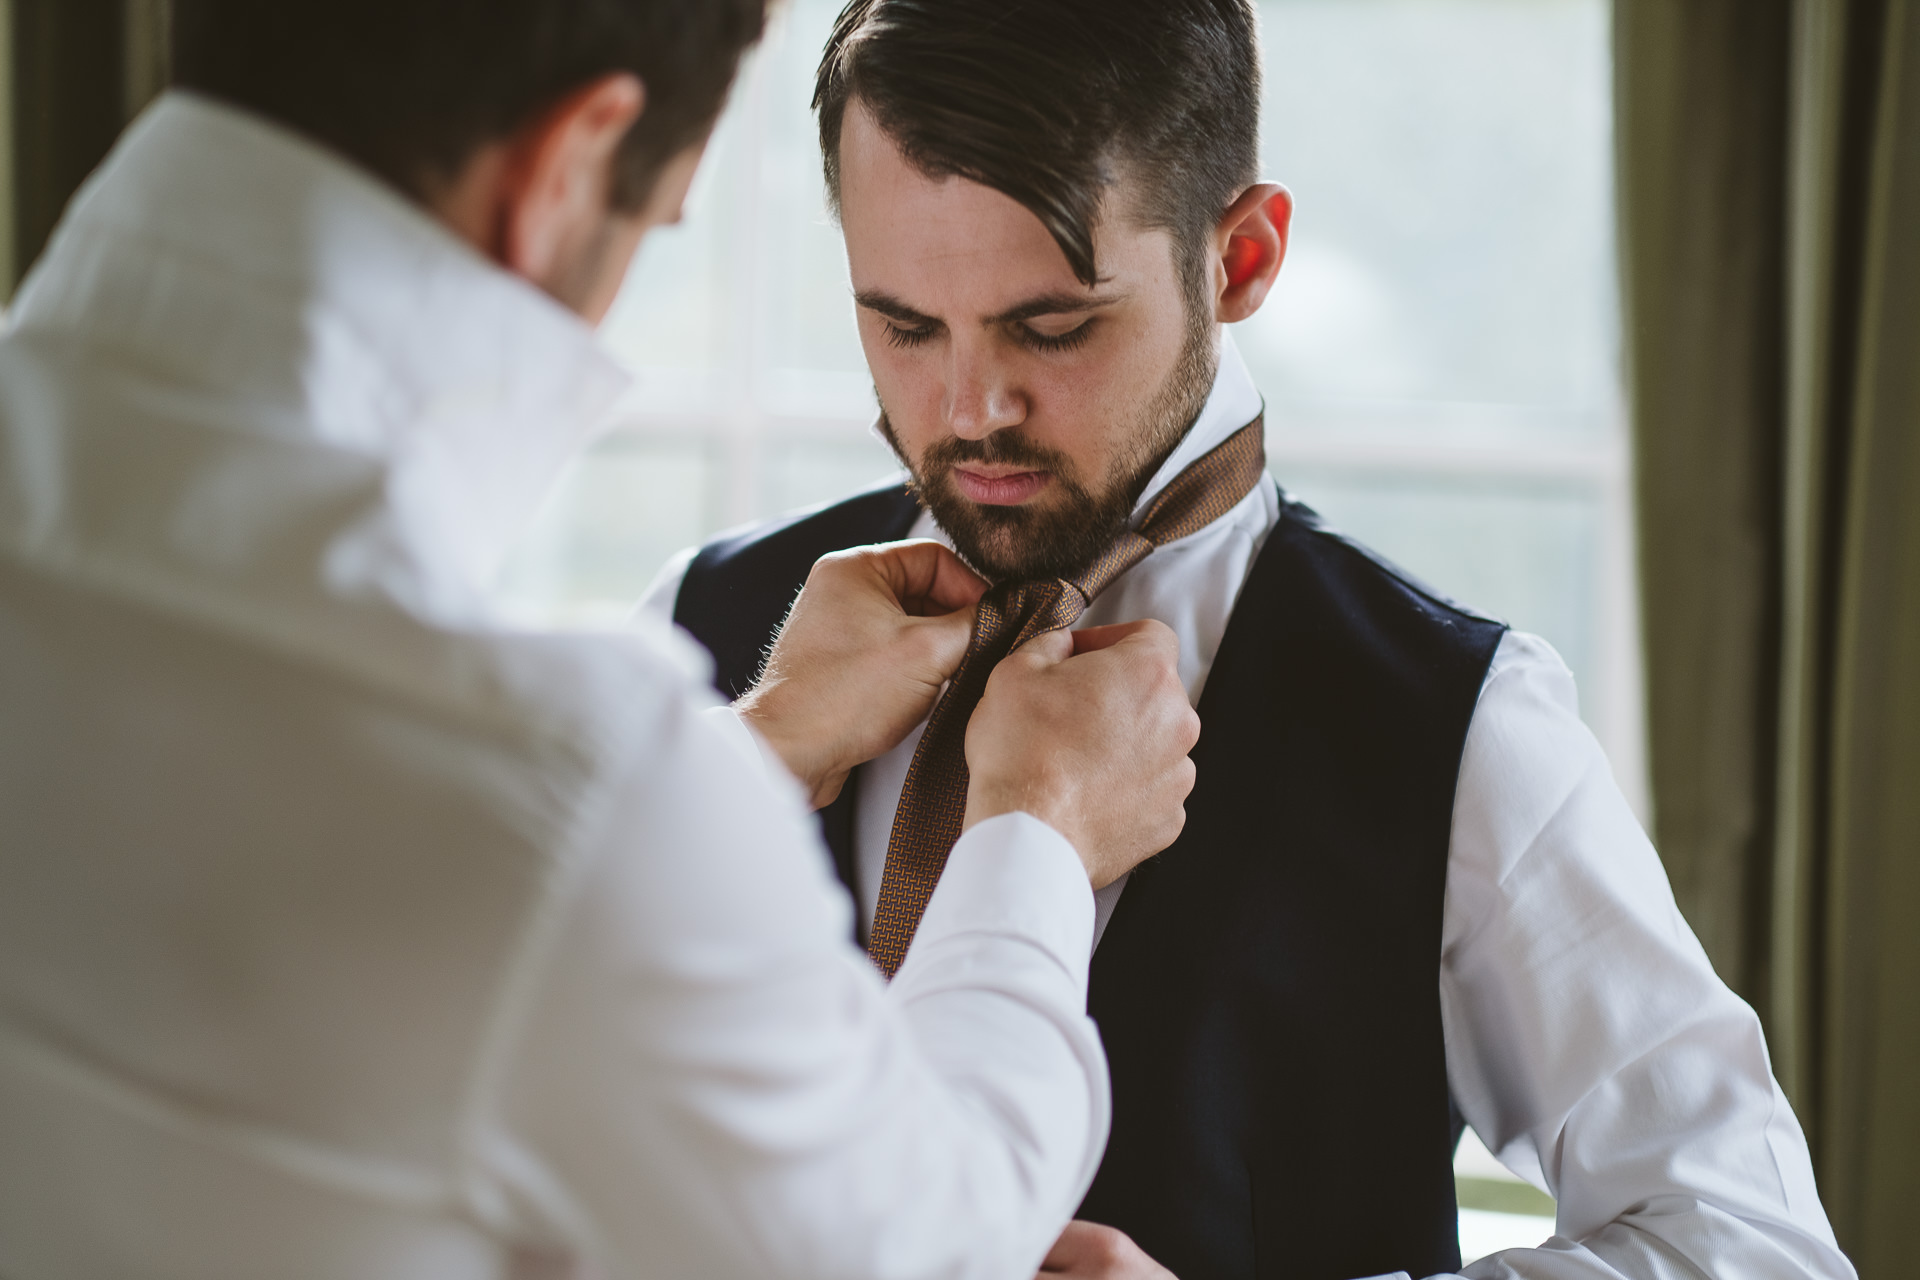 Why have a second shooter at a wedding? Capture groom prep!